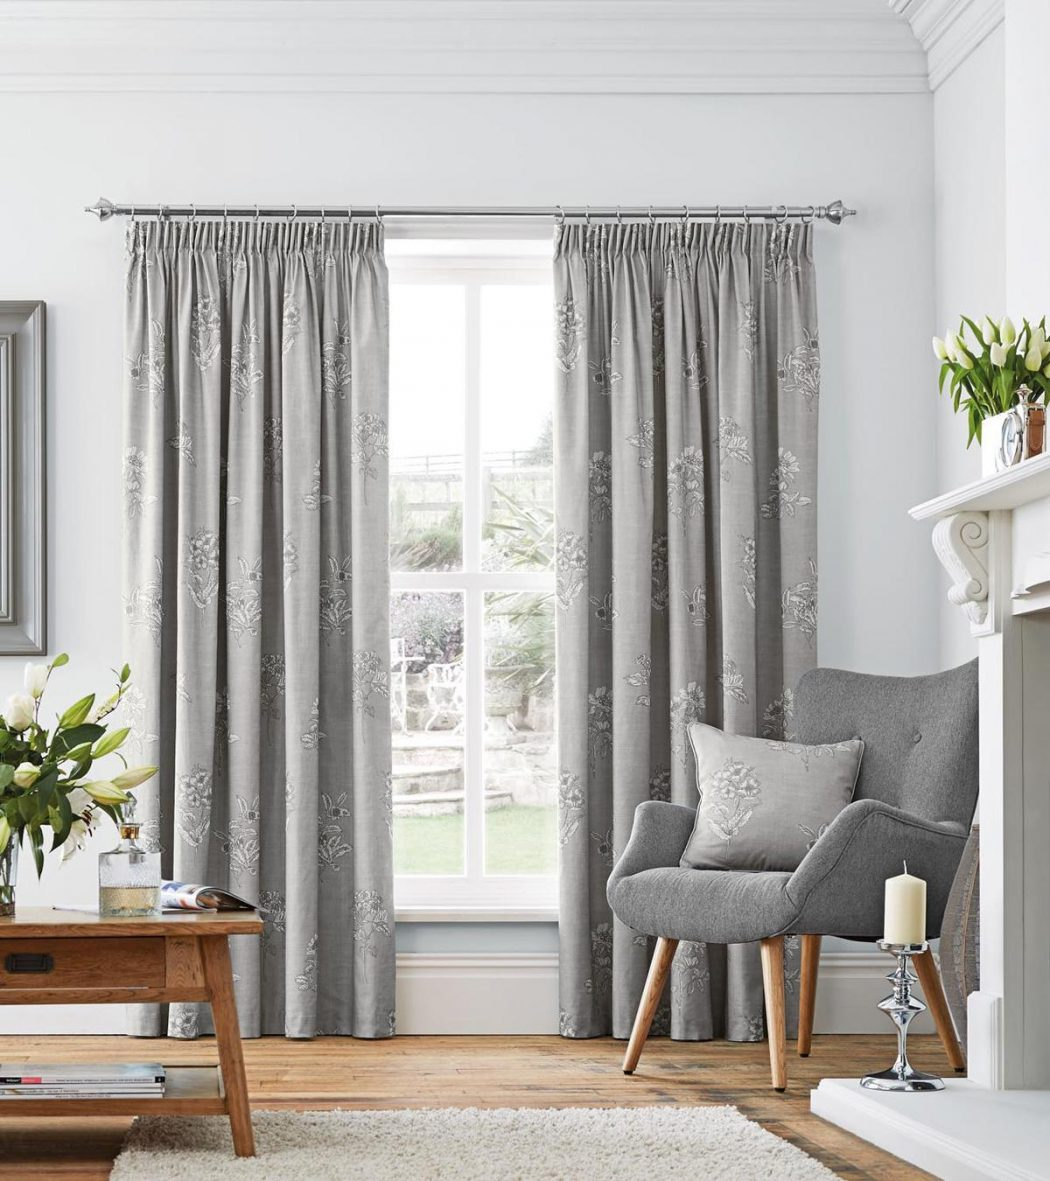 flora-dove-grey 20+ Hottest Curtain Designs for 2019